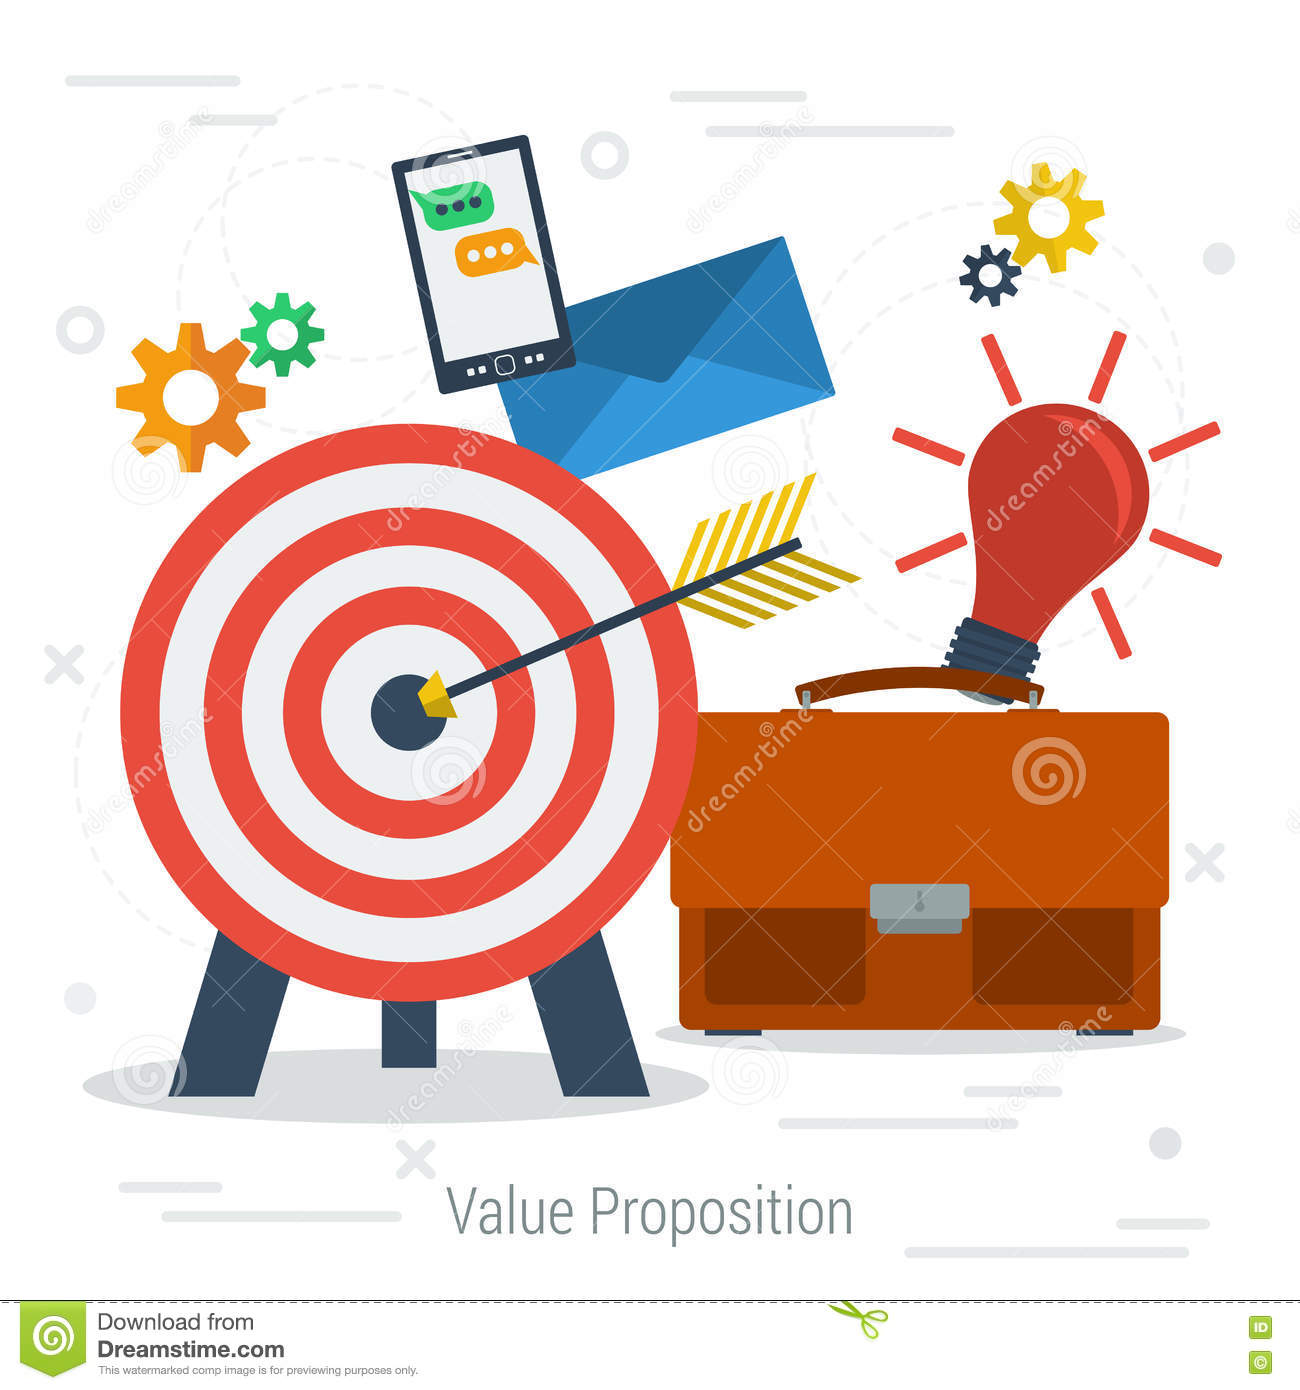 emerging value propositions for m commerce Demand chain management: enhancing customer value proposition, pankaj m madhani advocates a more customer-focused approach to the entire supply [] reply leave a reply cancel reply.